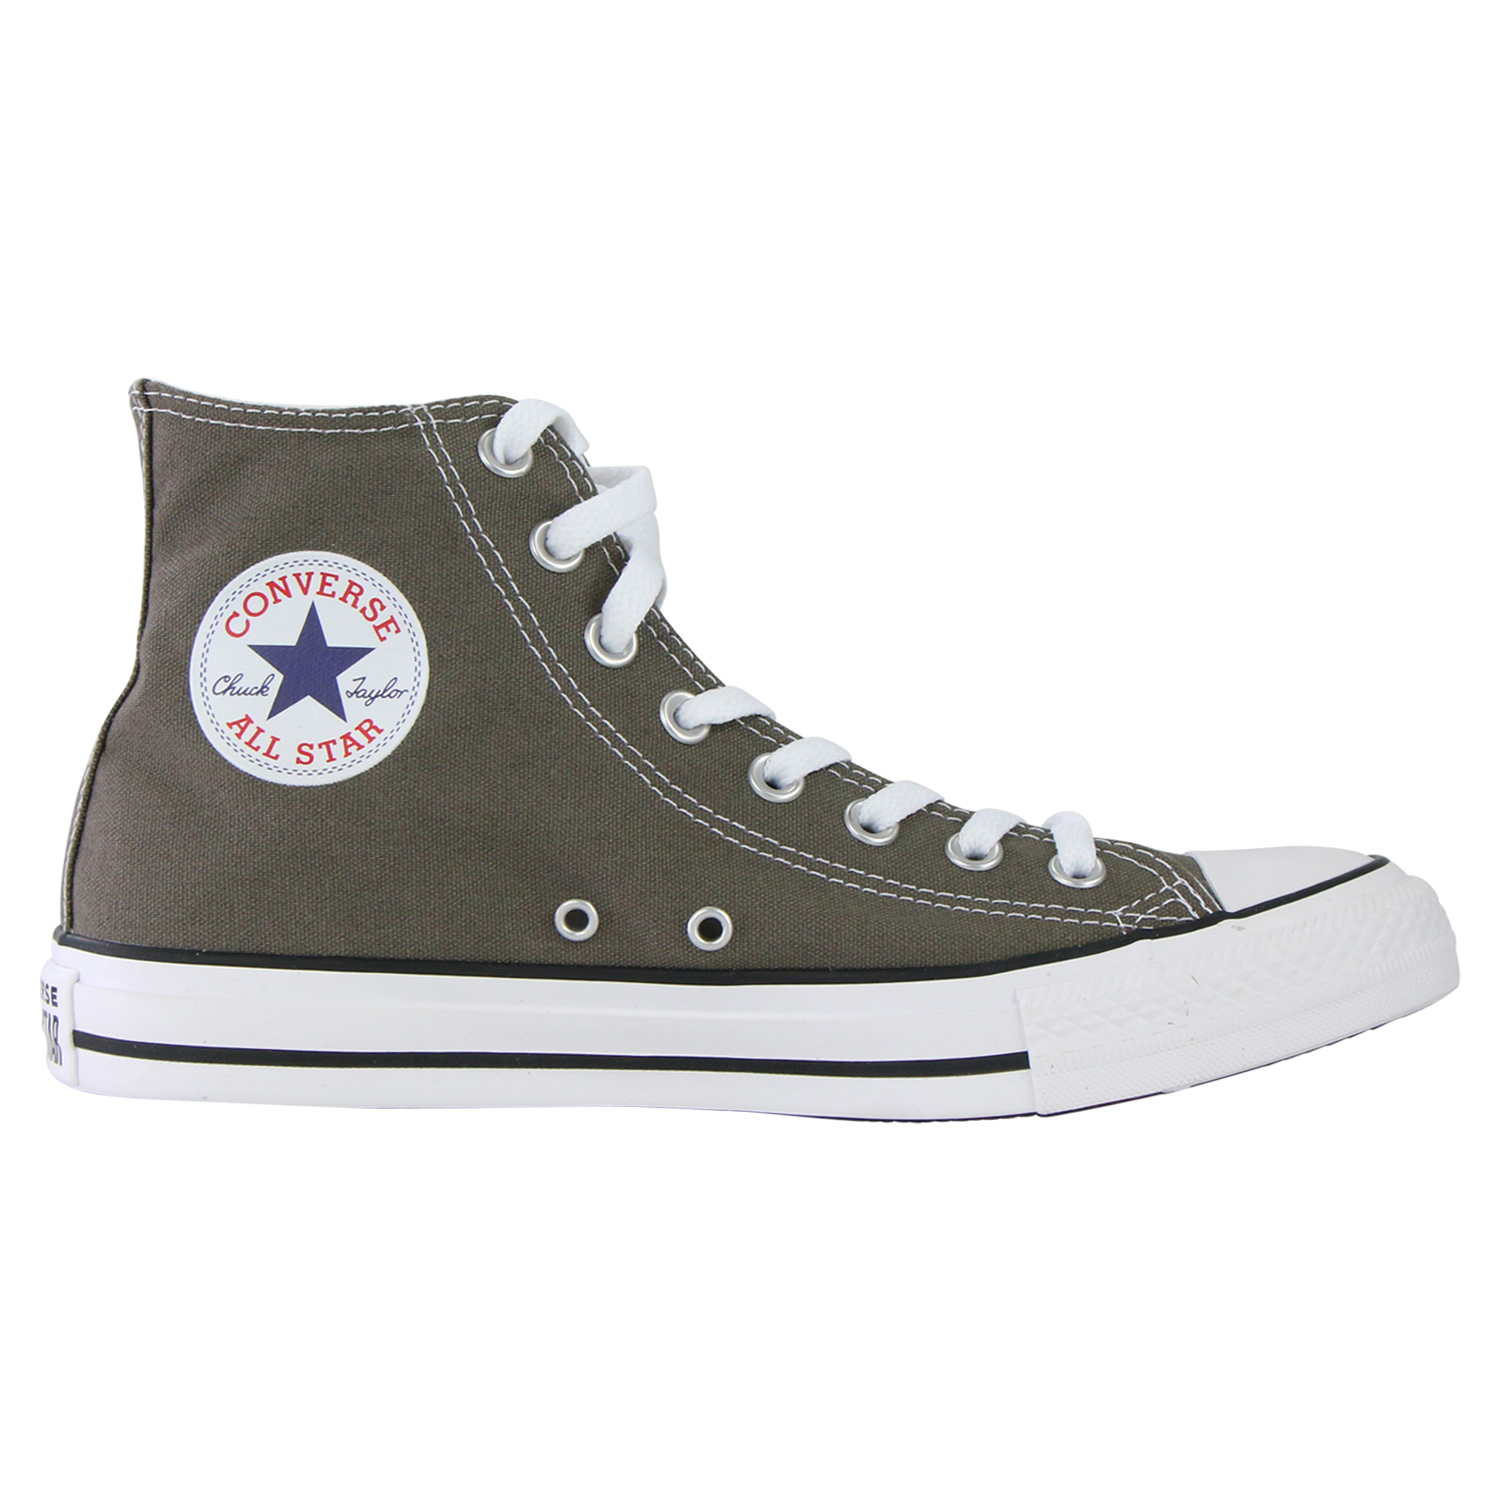 Converse All Star Chucks Grau Damen kuechenstudio